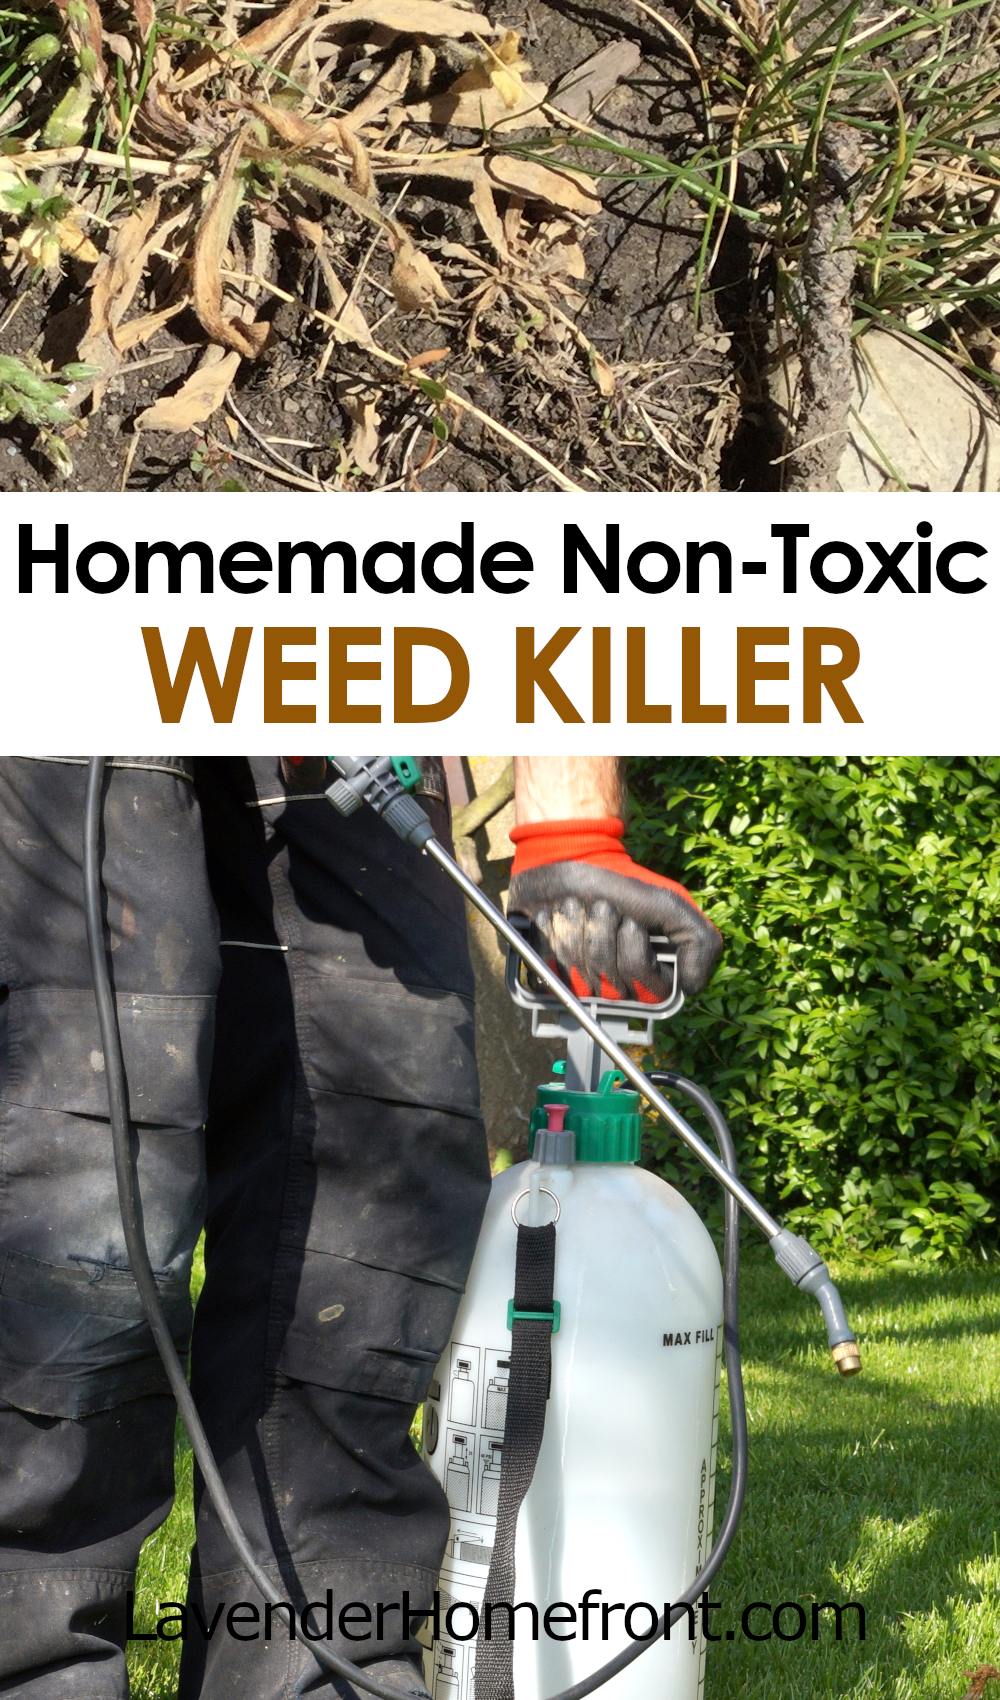 homemade non-toxic weed killer pinnable image with text overlay